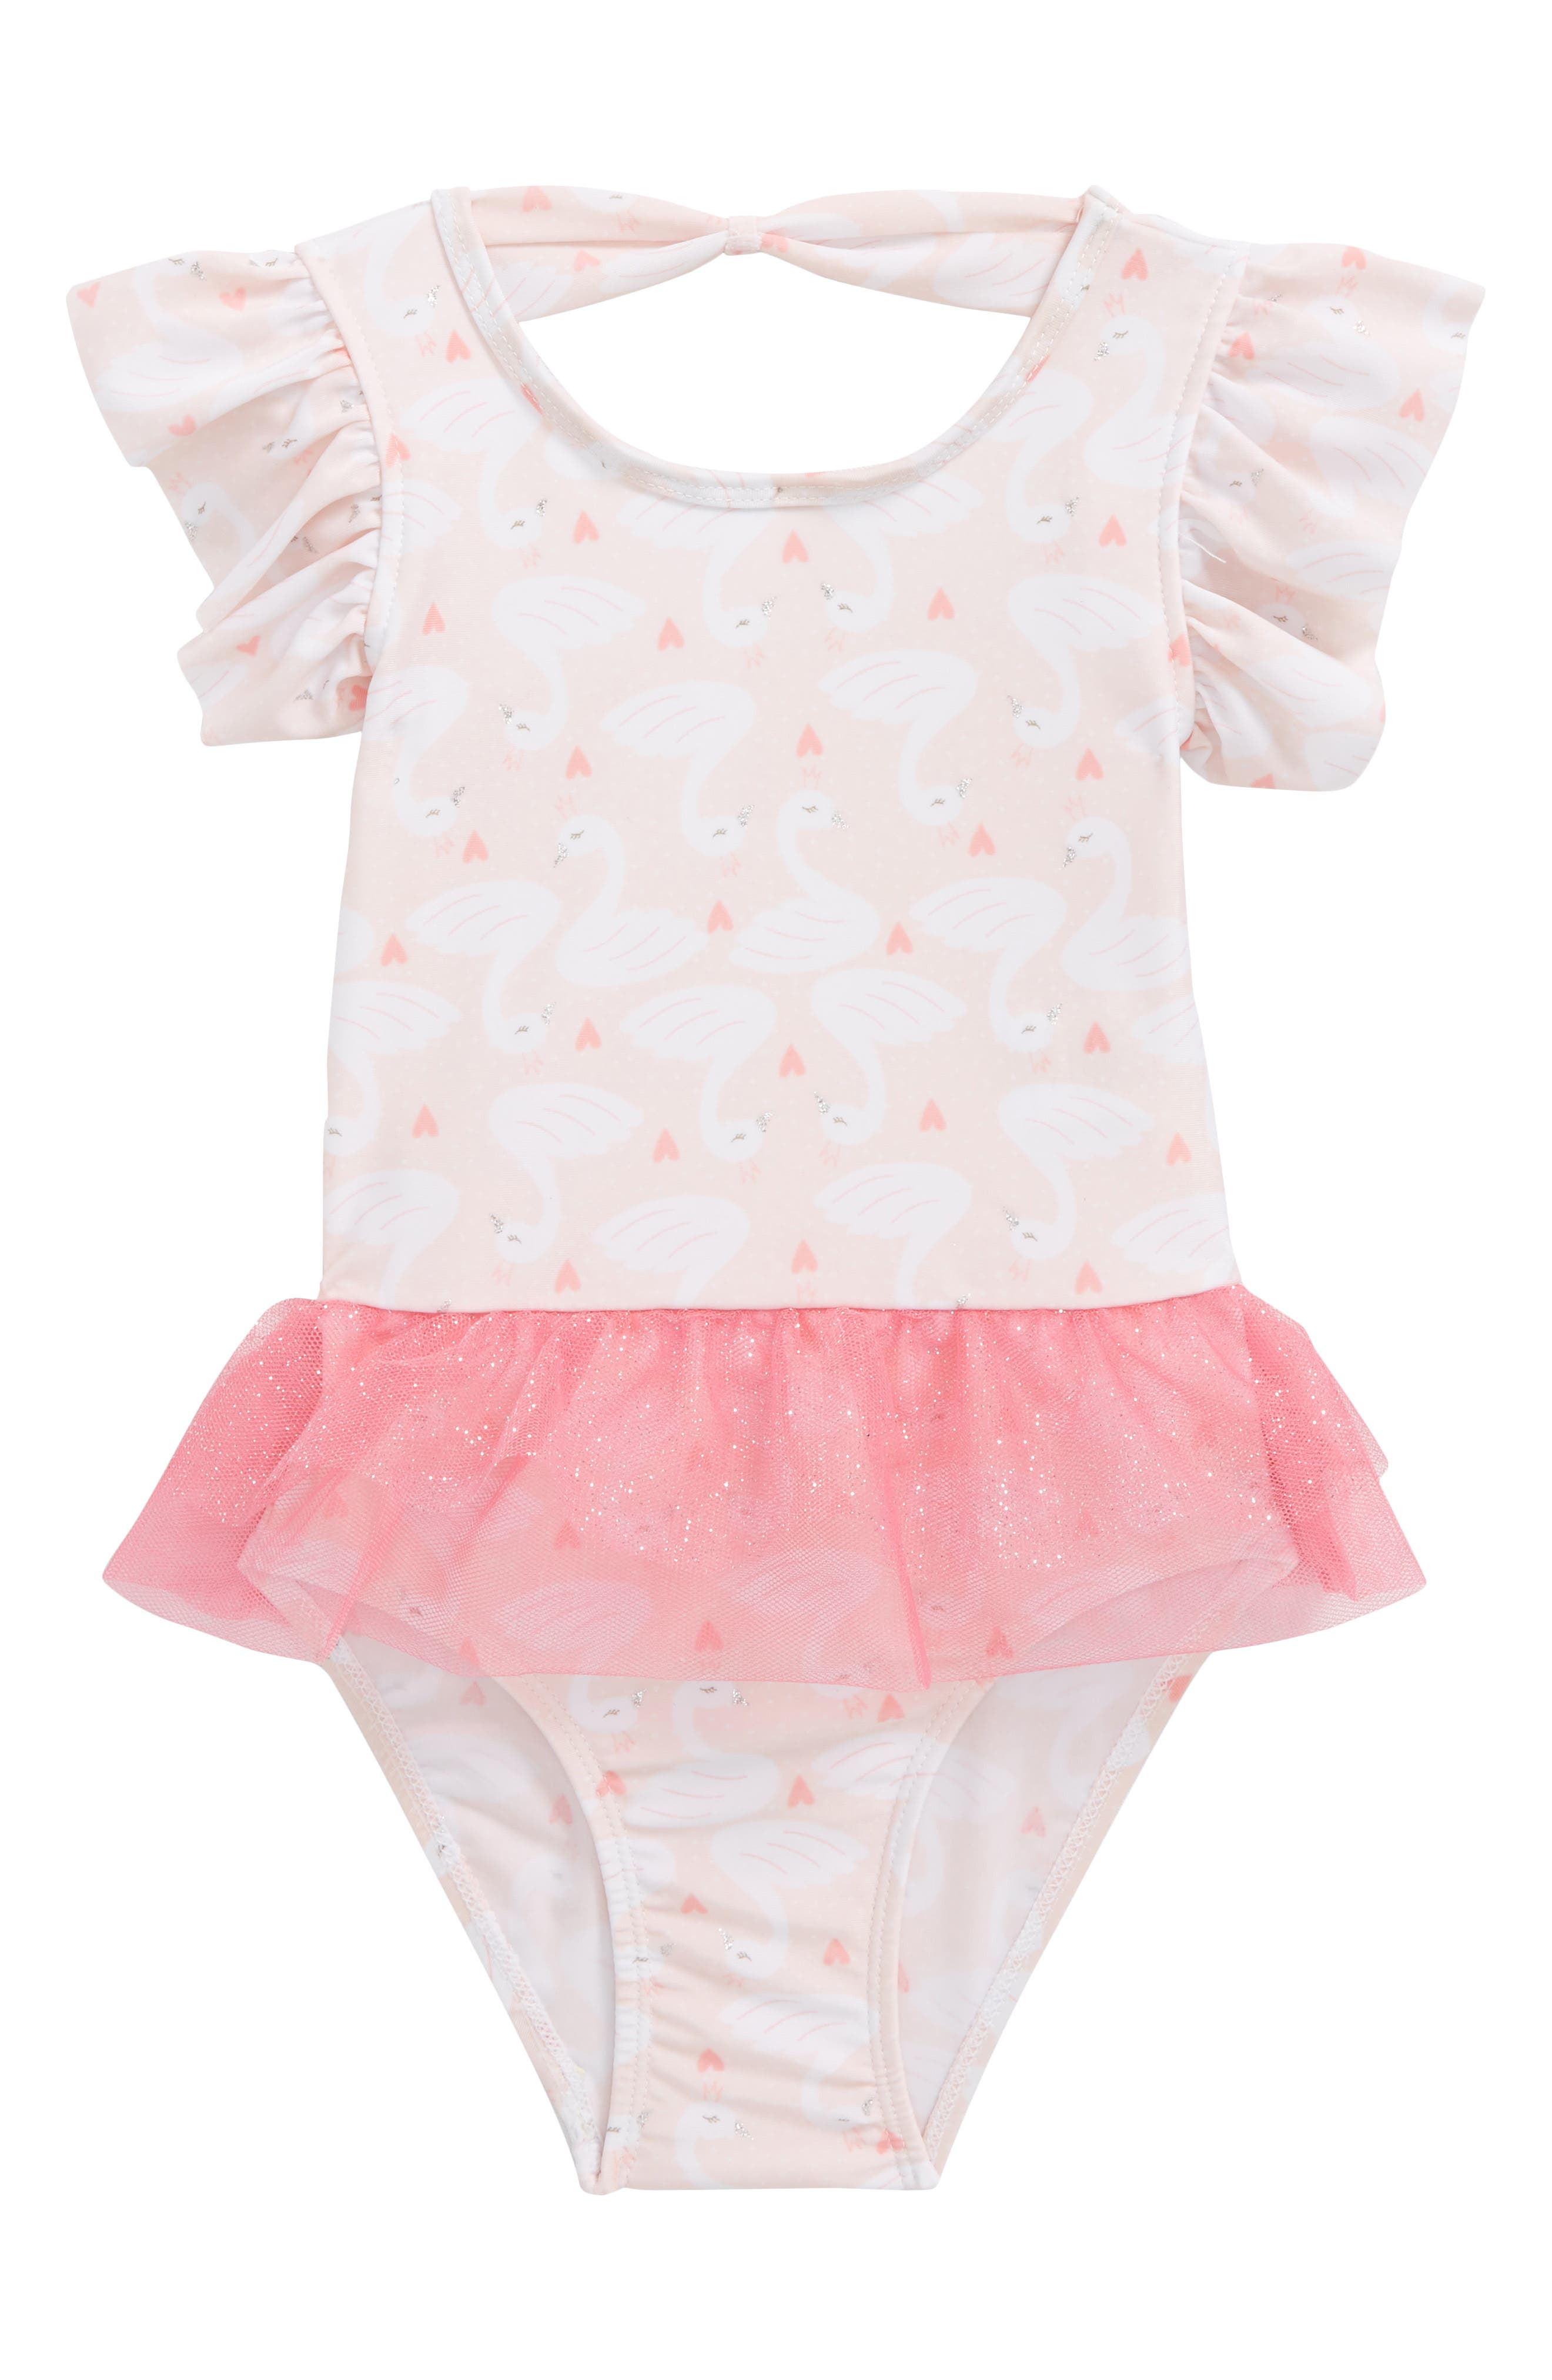 Princes Swan One-Piece Swimsuit,                         Main,                         color, Pink/ White